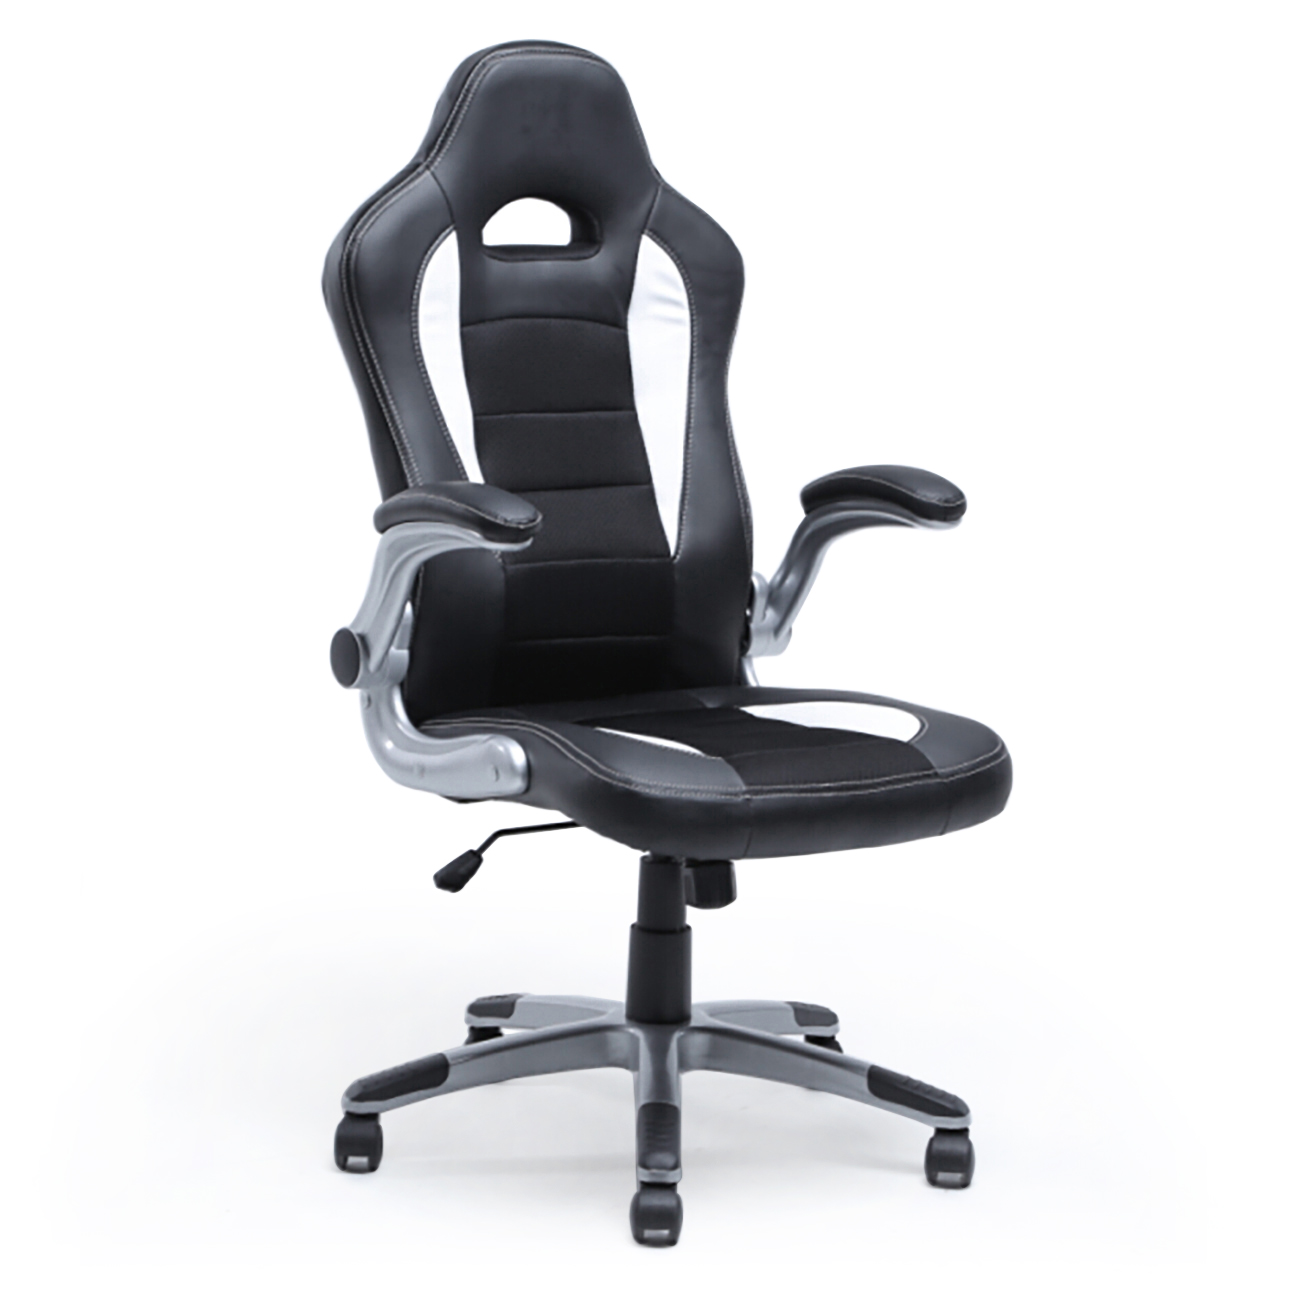 leather bucket chair revolving small office ergonomic computer pu desk race car